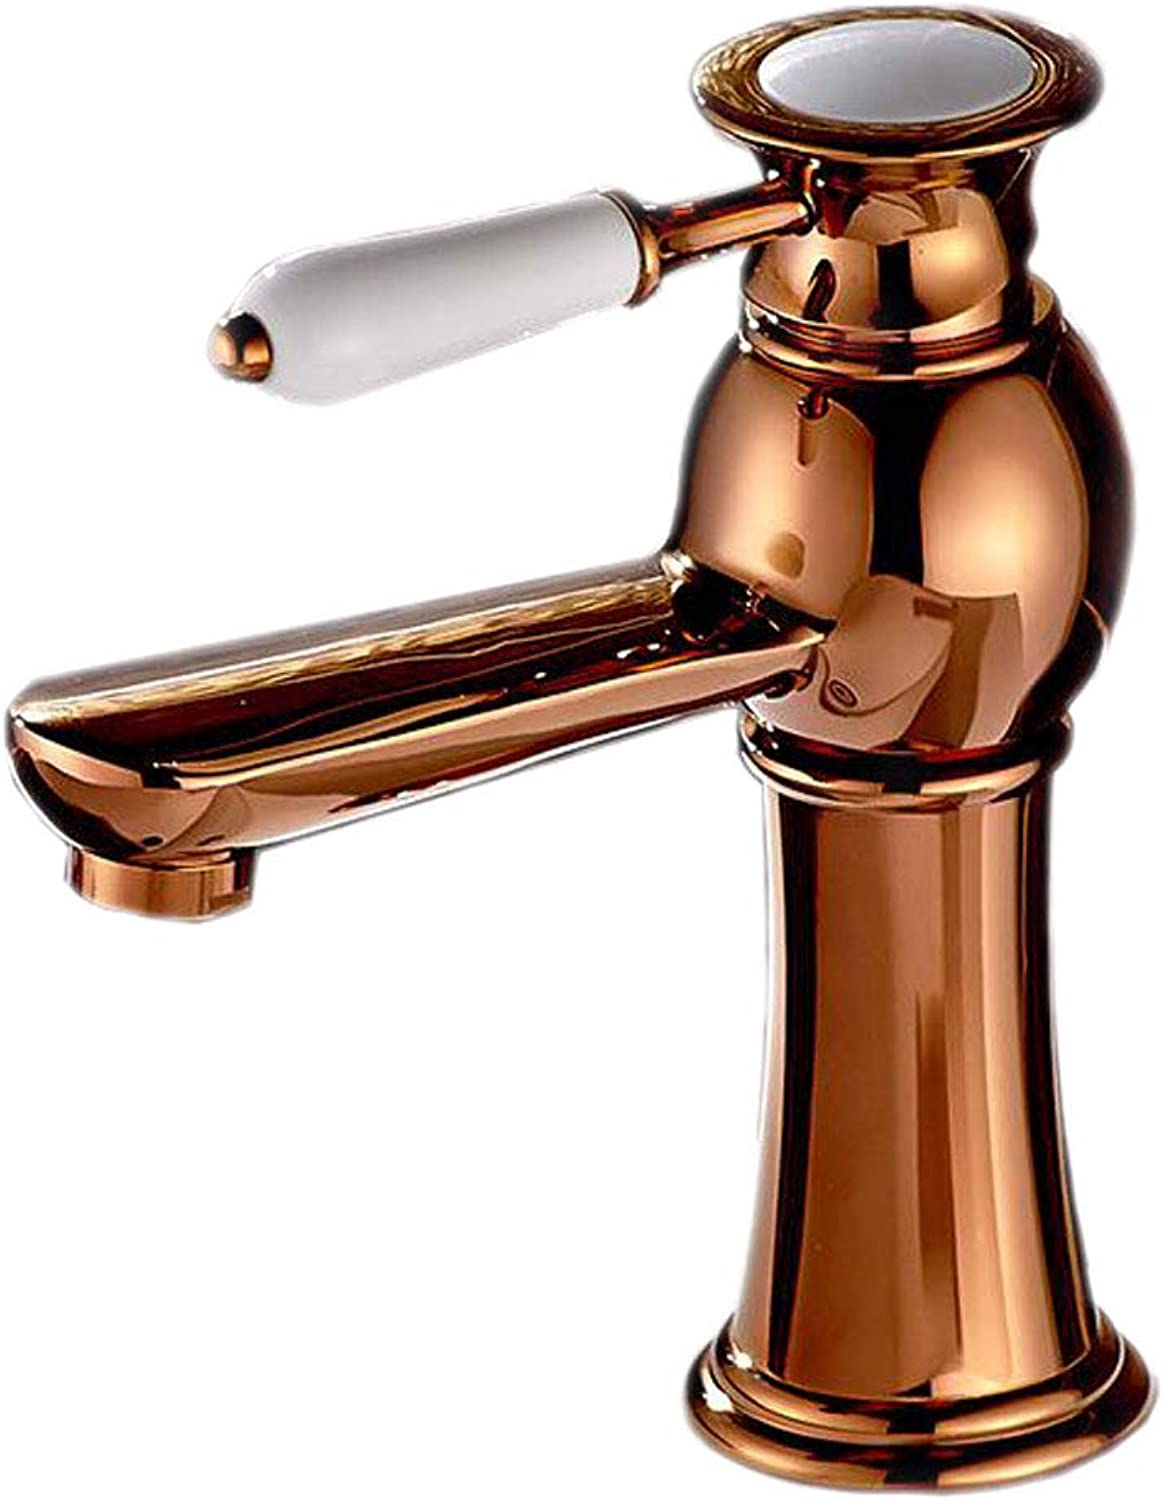 Bidet Taps Faucet Single Hole Copper Hot And Cold gold Flat Mouth Bathroom Wash Basin Mixing Valve Aperture 32MM To 40MM Can Be Installed